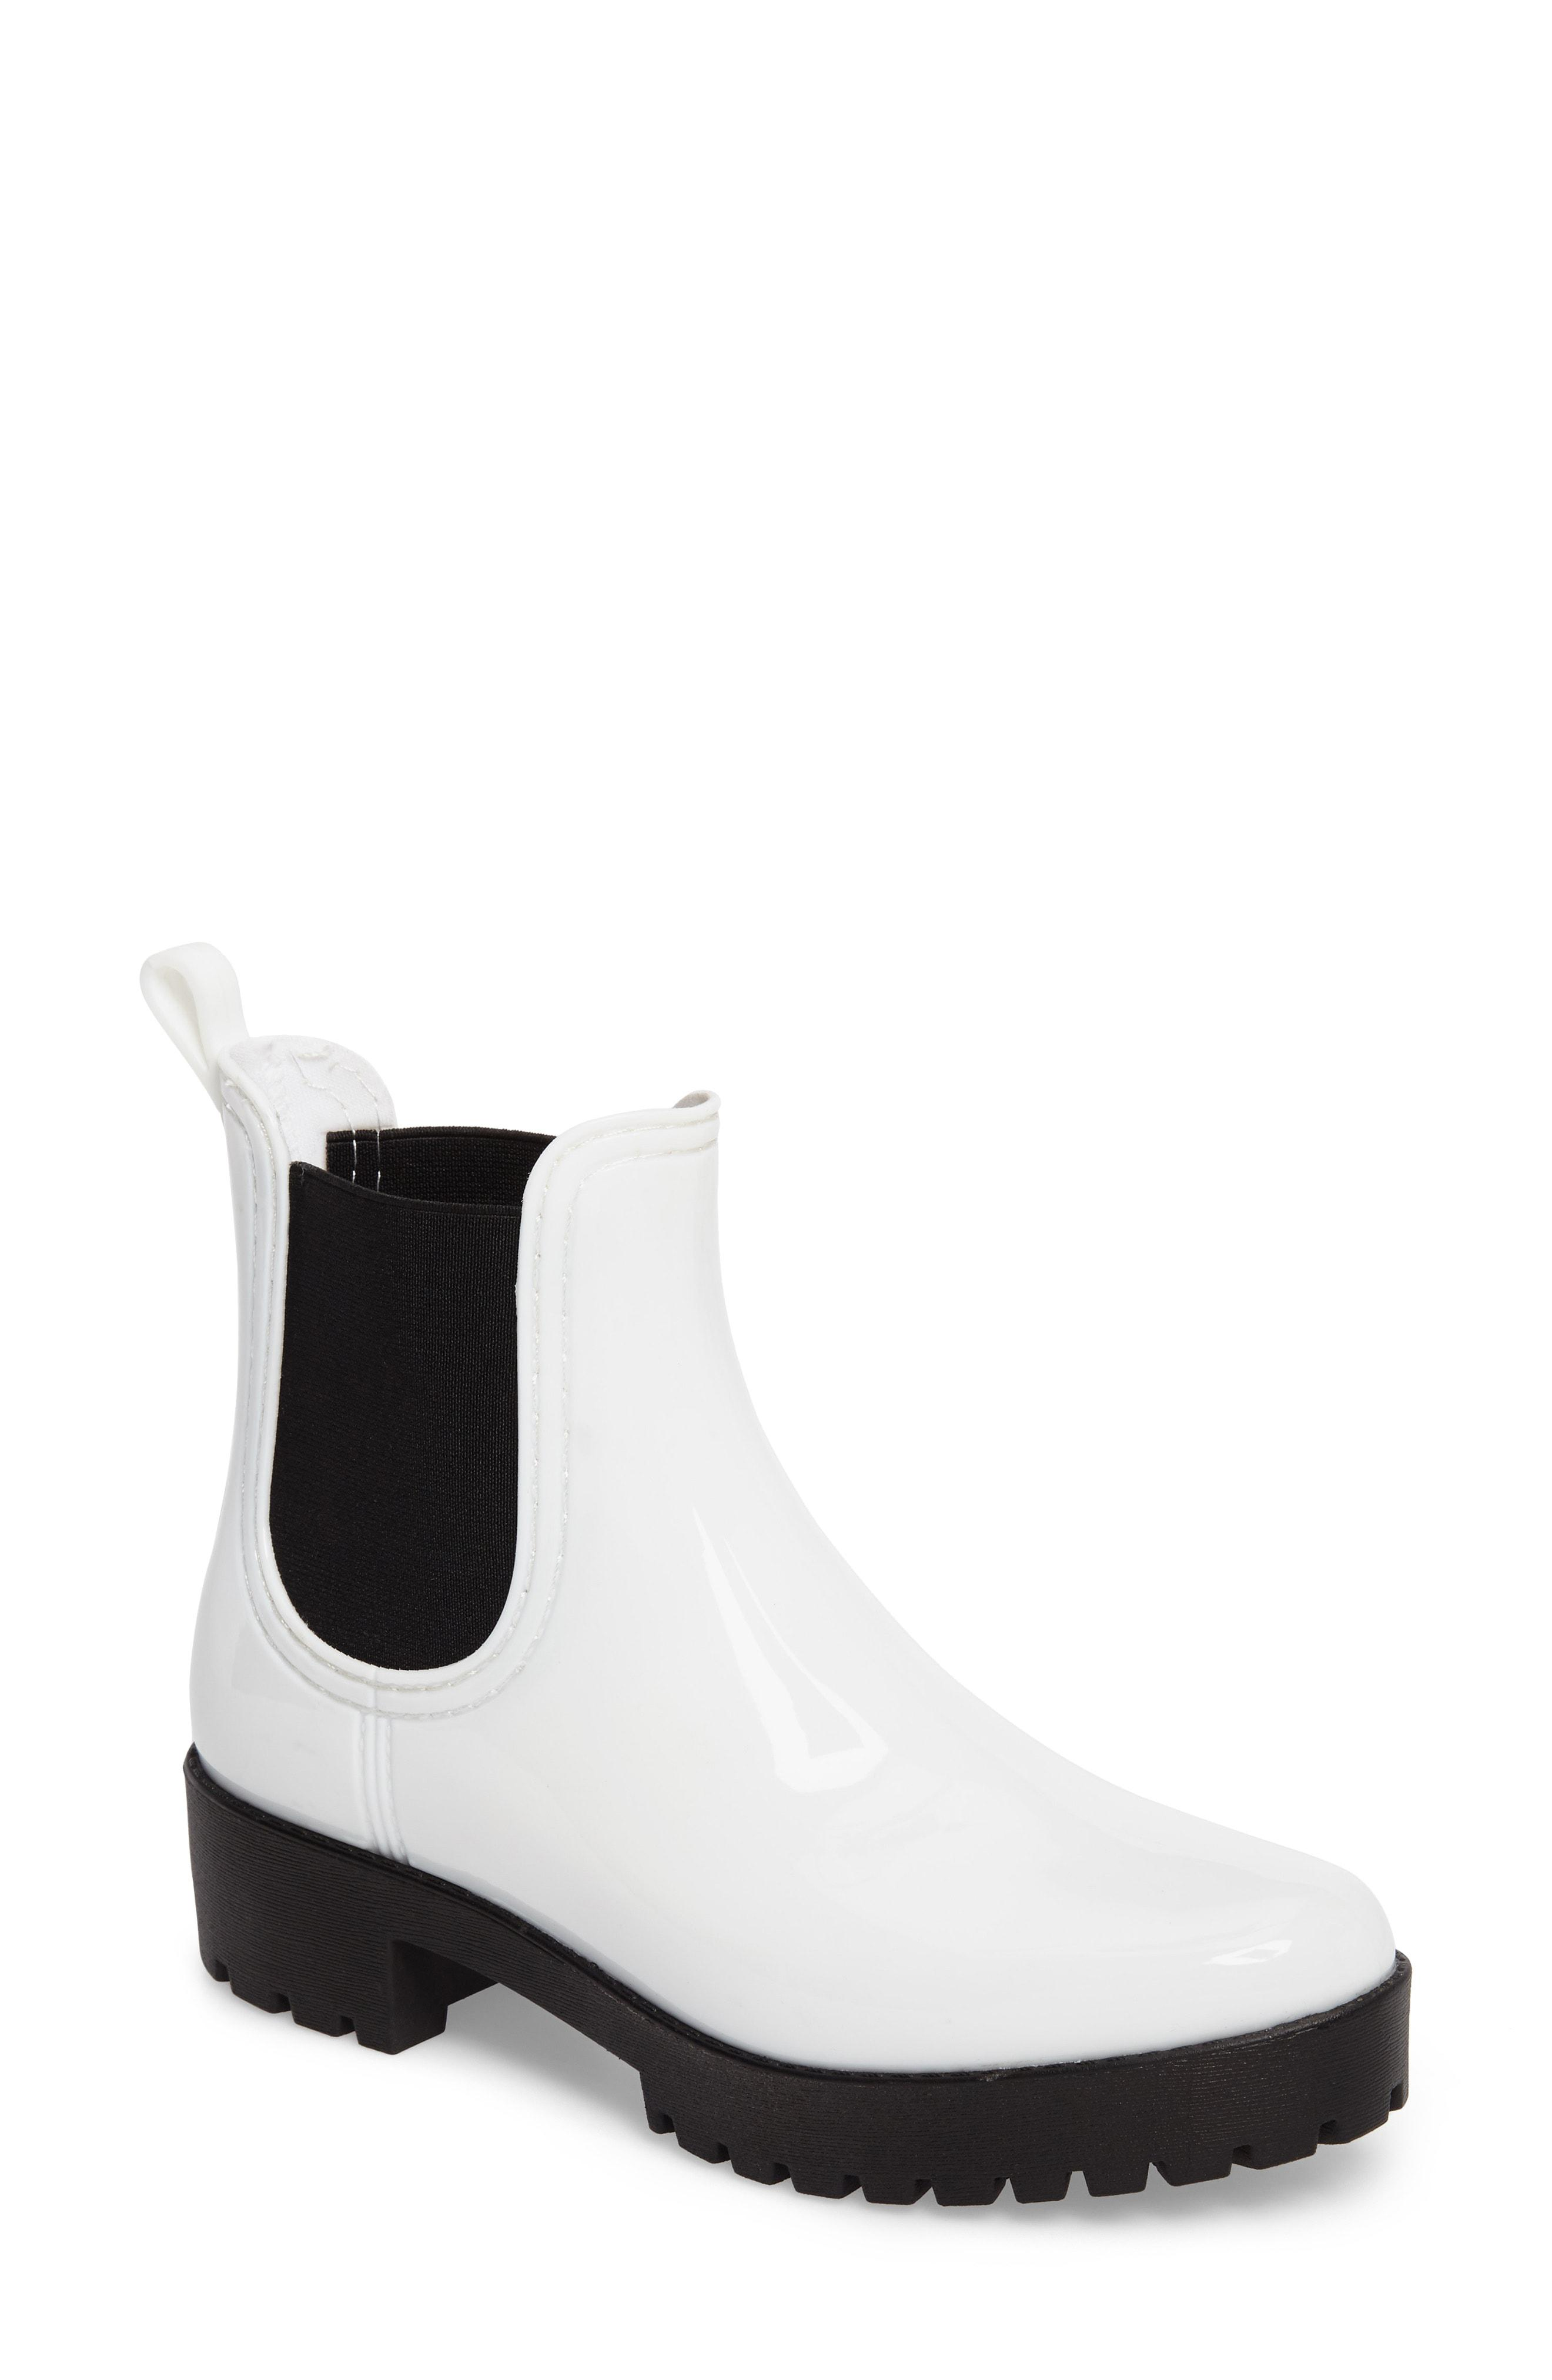 12b041104f2 Gallery. Previously sold at  Nordstrom · Women s Rain Boots Women s Chelsea  Boots Women s Frye Veronica Women s Jeffrey Campbell ...